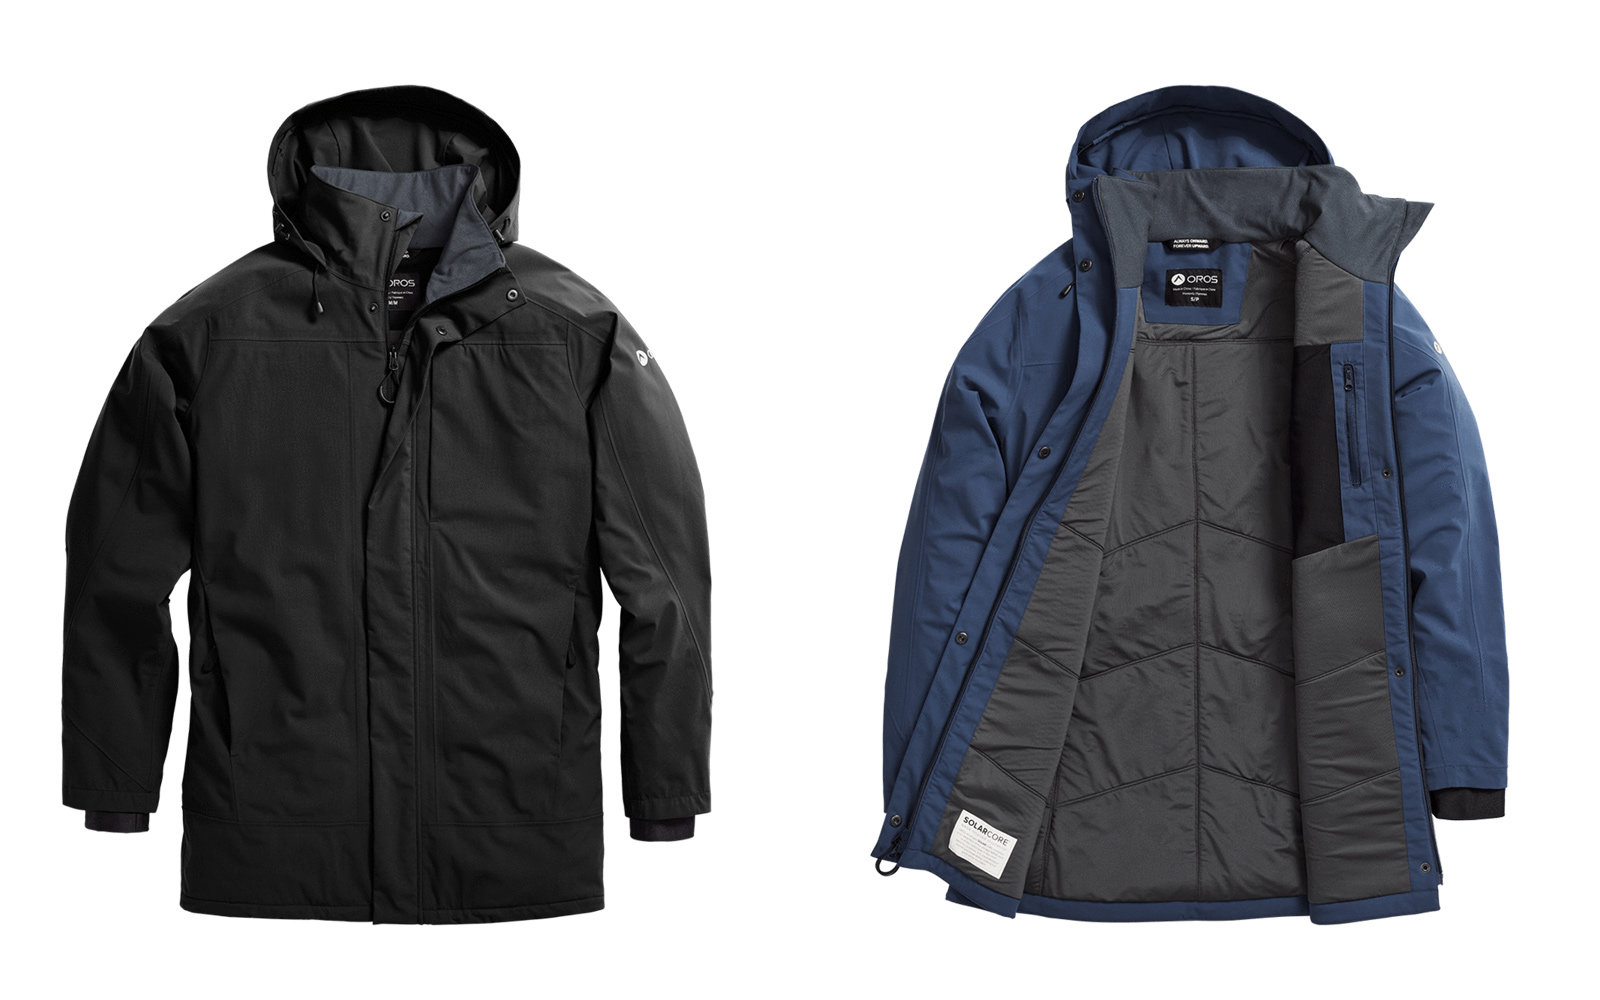 4de427ff60c The Best Packable Travel Jackets